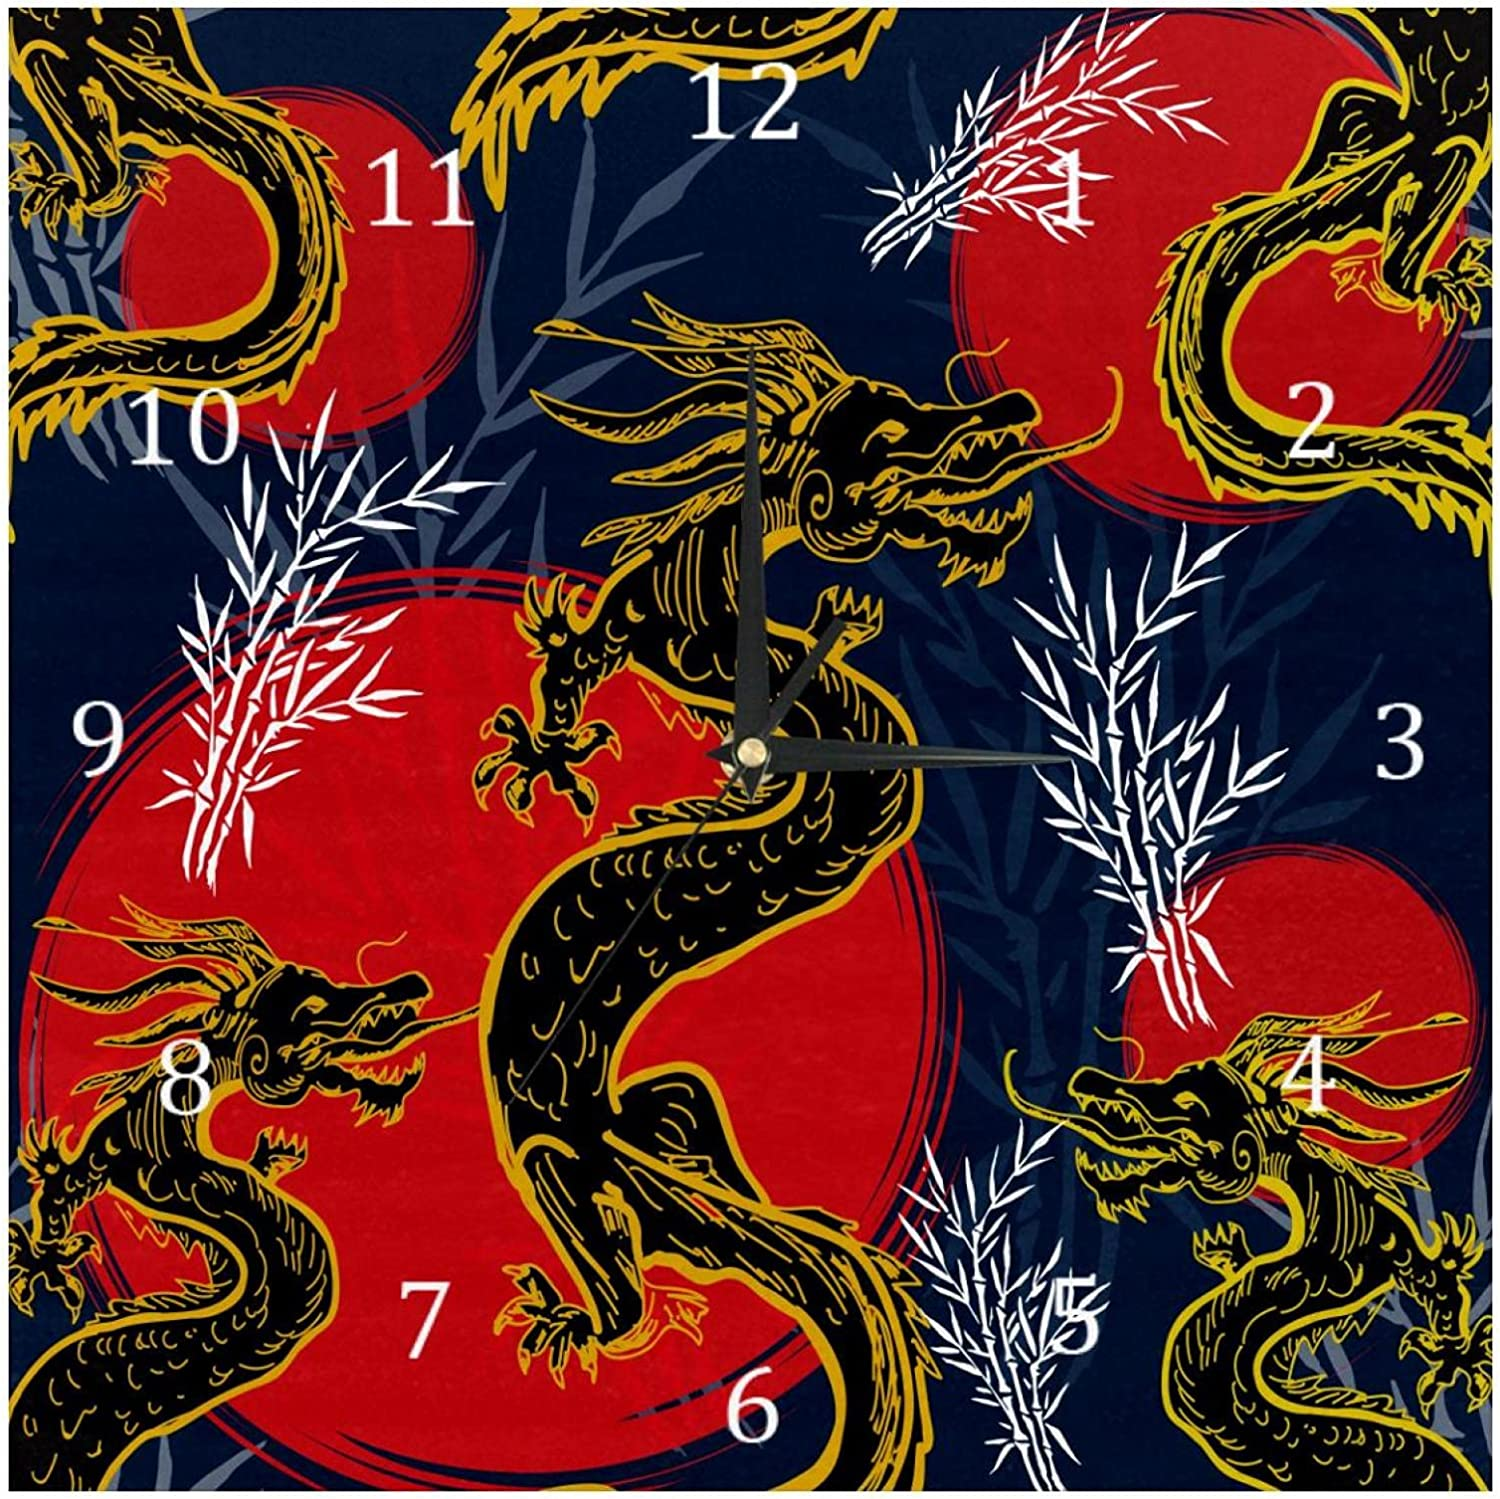 AISSO Wall Clocks Chinese Black Golden Dragon Red Sun Battery Operated Number Clock for Bedroom Living Kitchen Office Home Decor Silent & Non-Ticking